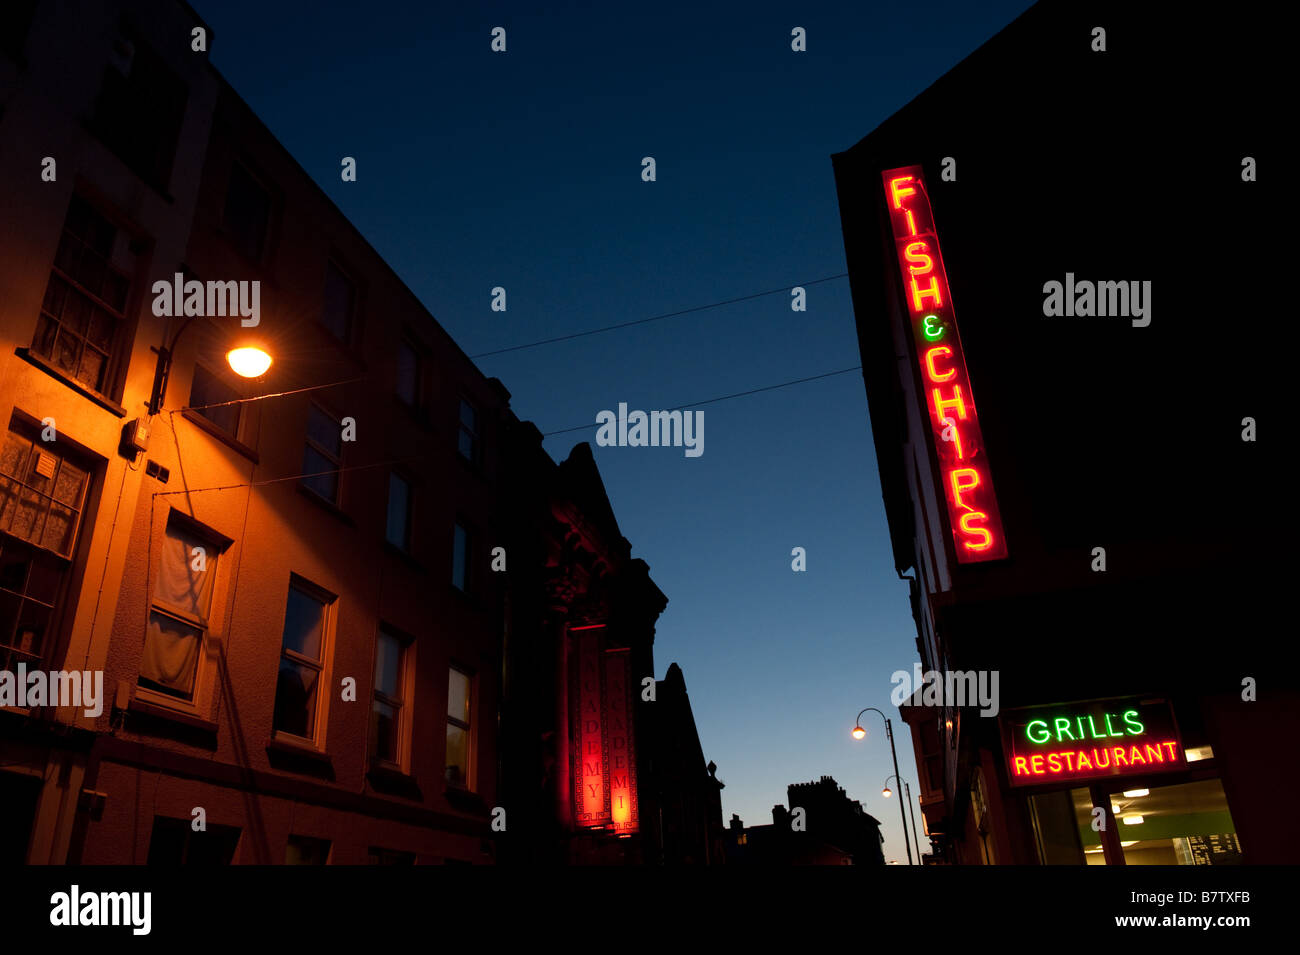 Fish and chips shop neon signs illuminated at night Aberystwyth Wales UK - Stock Image